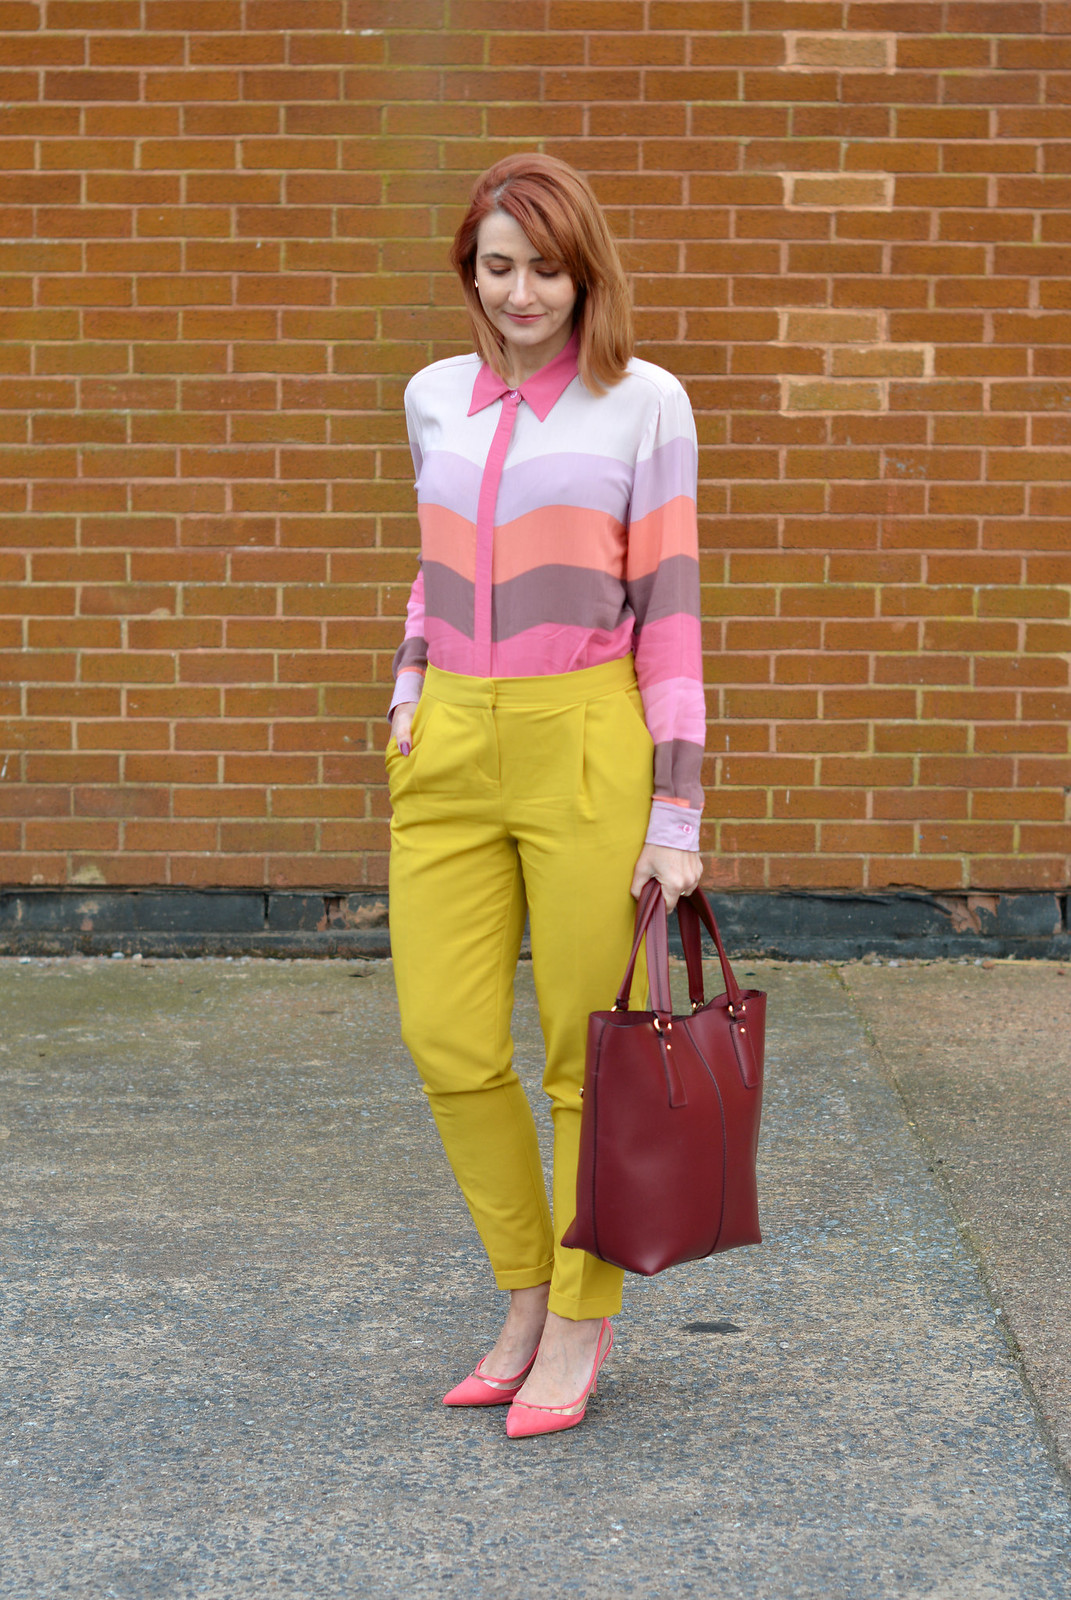 SS16 pastel bright stripes, mustard yellow trousers, coral heels | Not Dressed As Lamb